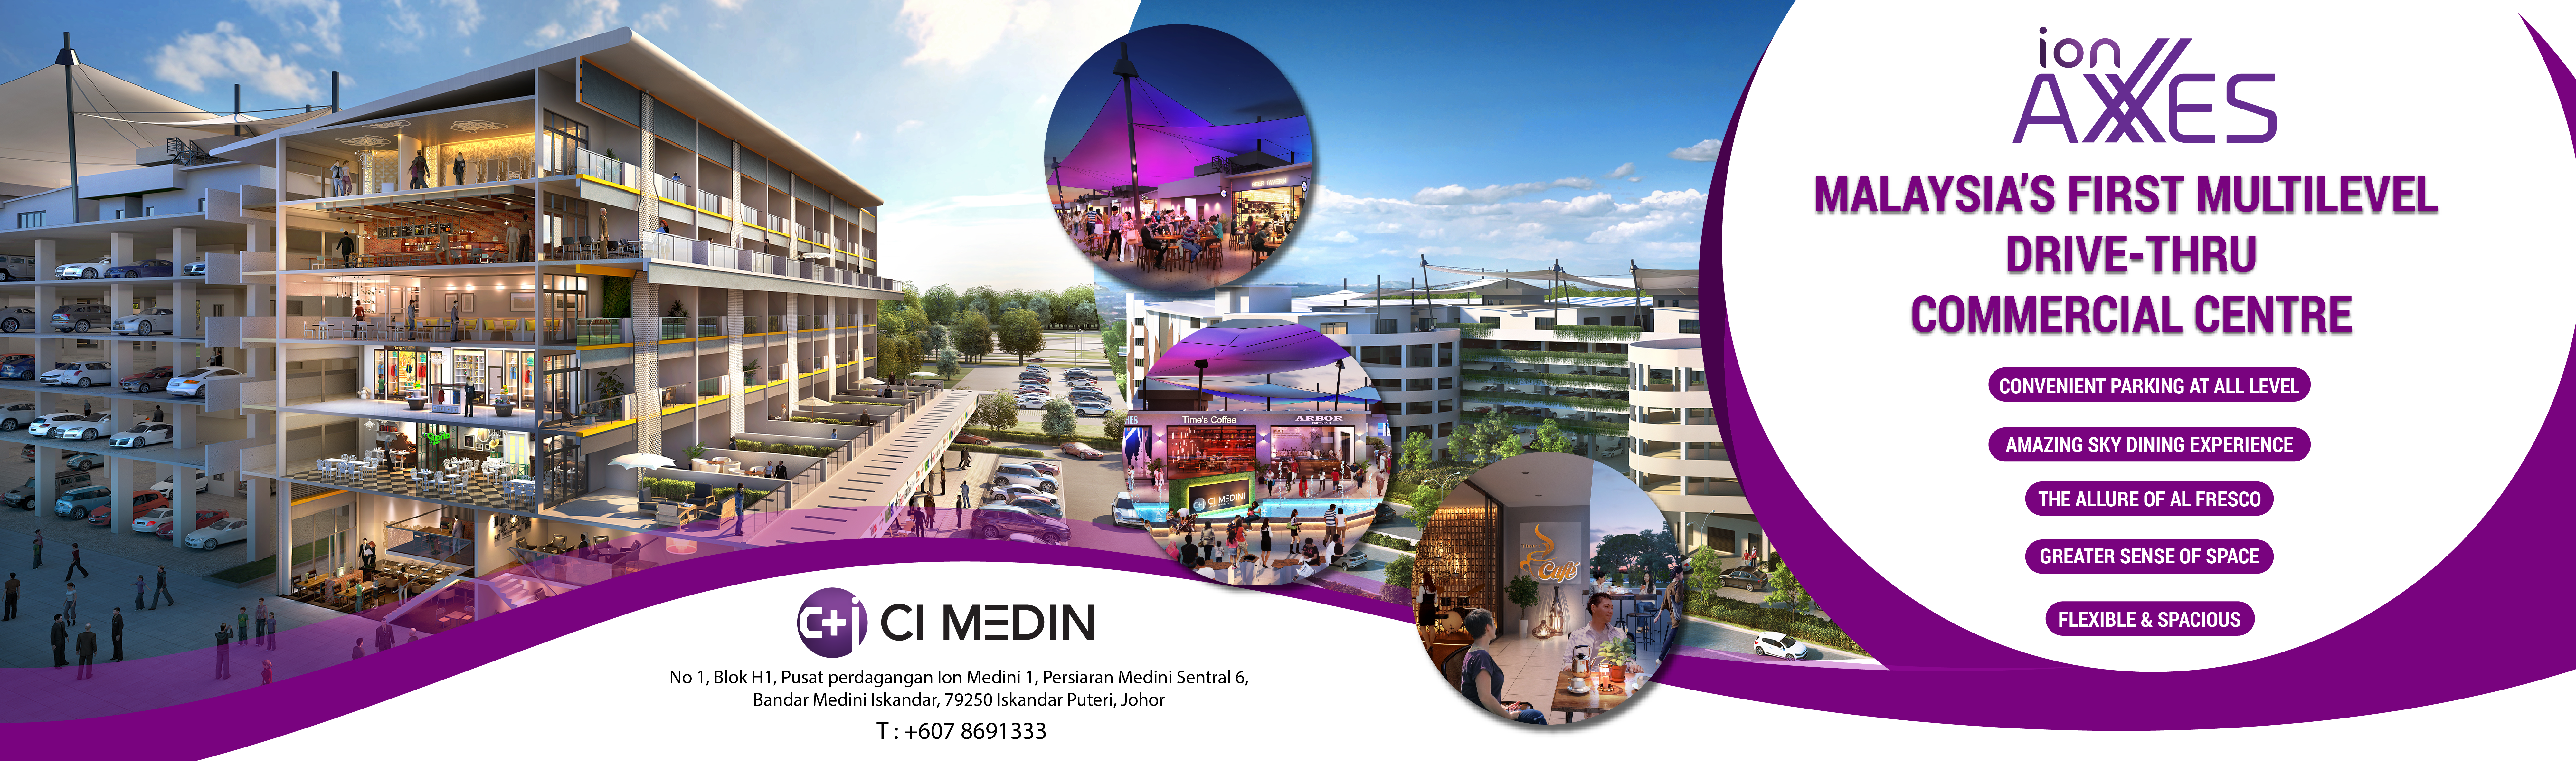 ion axxes commercial centre by ci medini